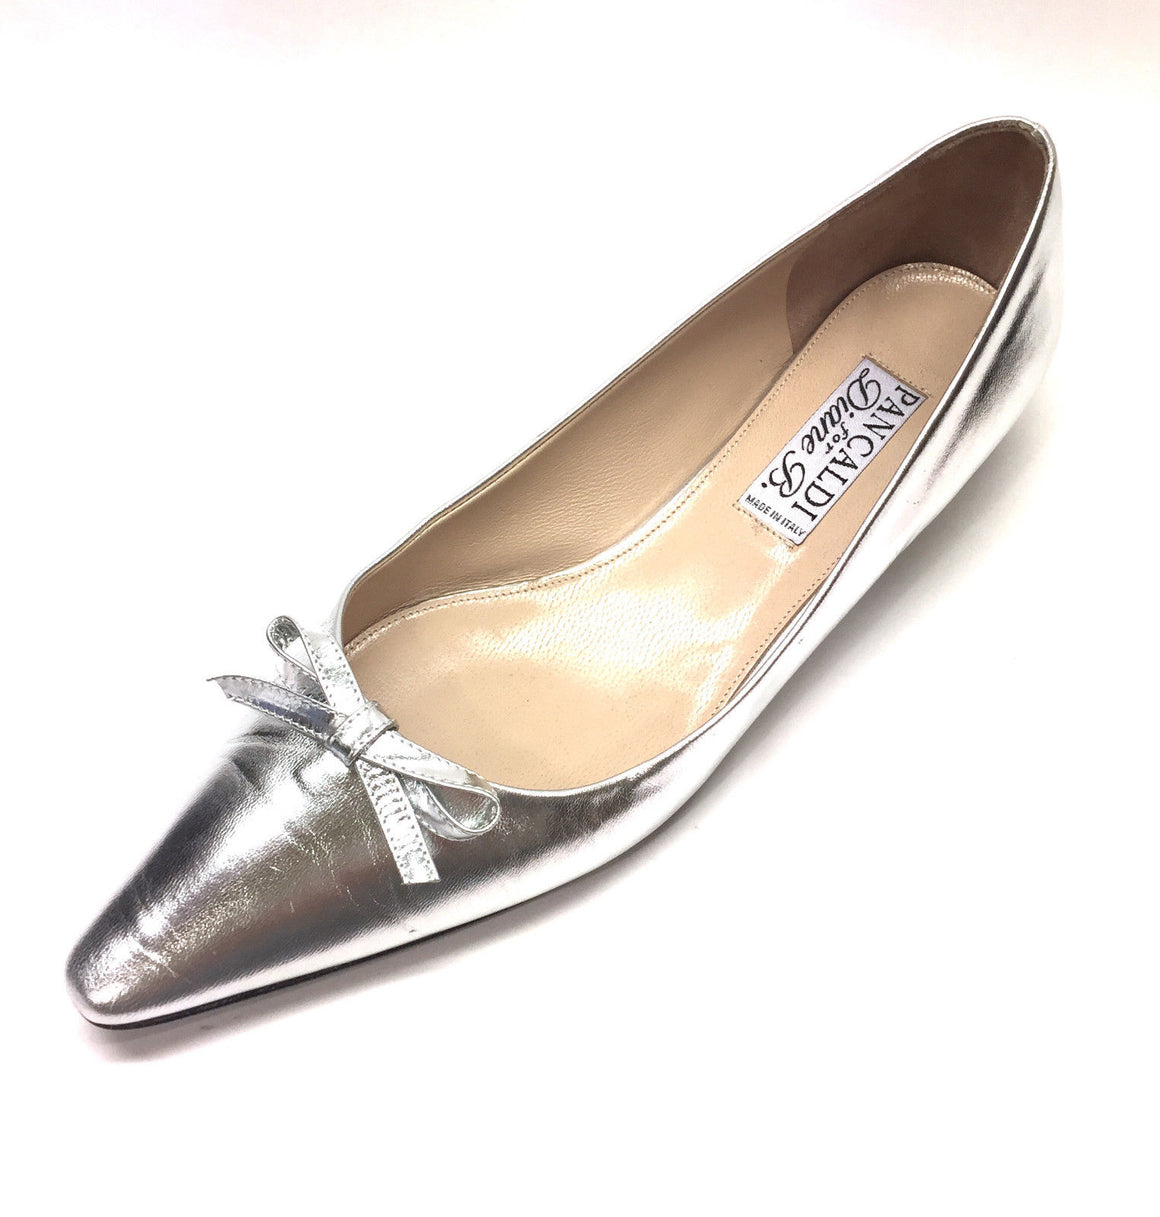 PANCALDI for DIANE B. Silver Leather Pointed-Toe Ballet Flats Size: 40 / 10